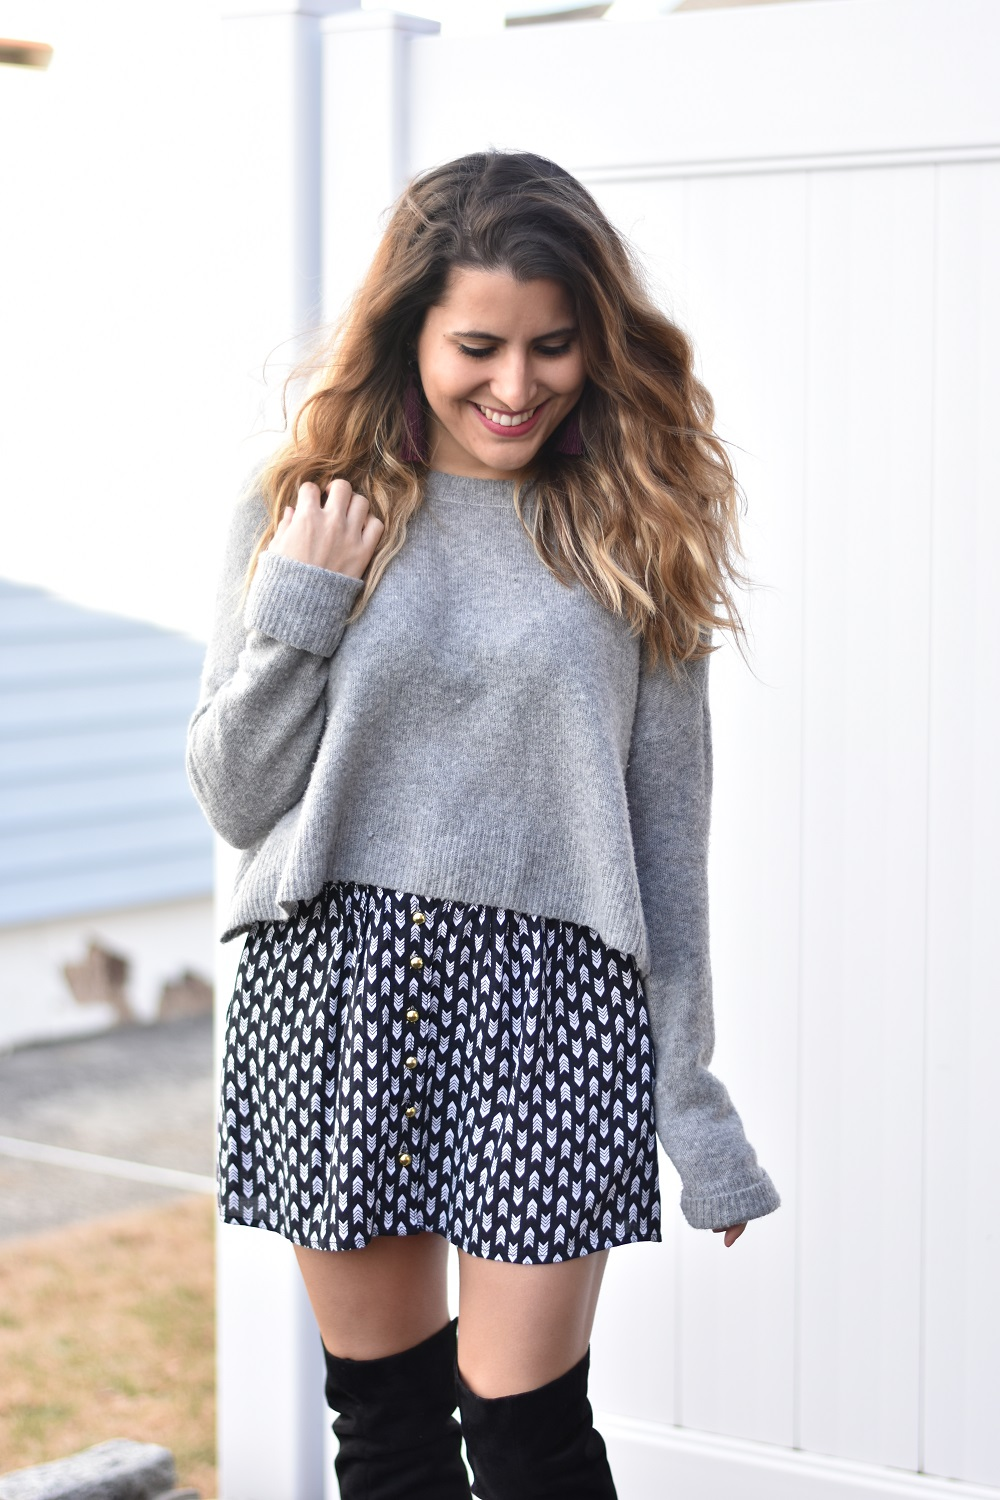 Cropped Sweaters \u0026 Short Skirts